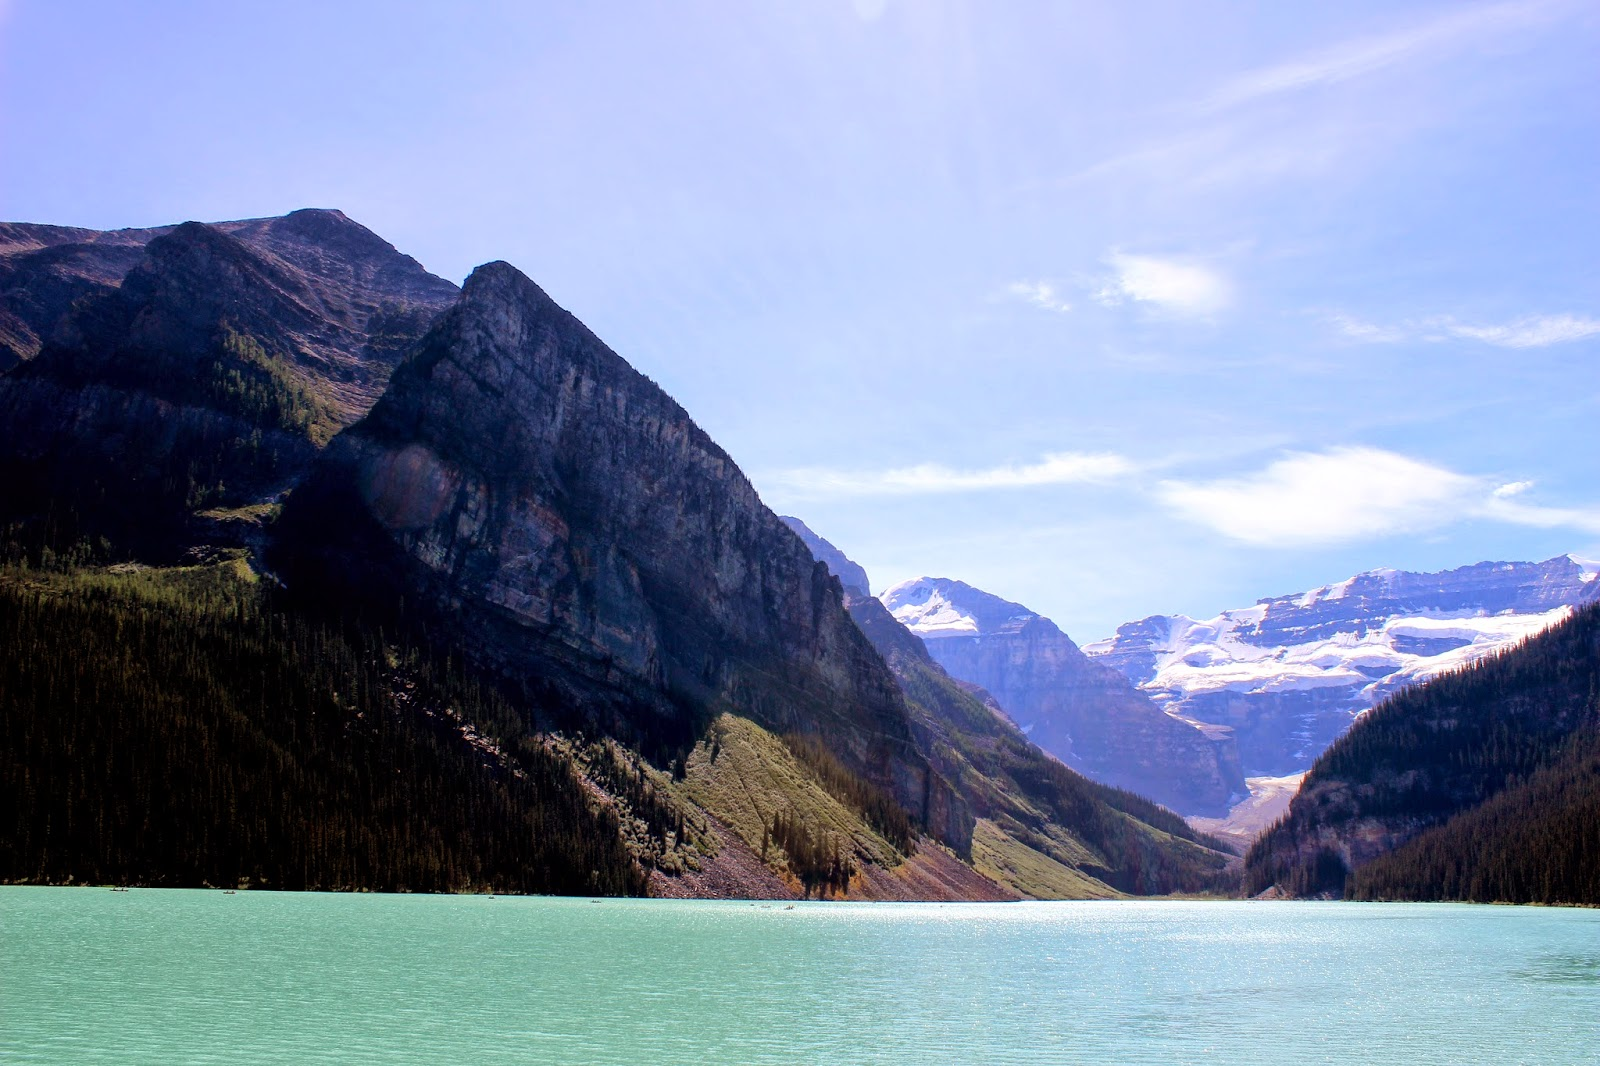 Mount Fairview to the left at Lake Louise